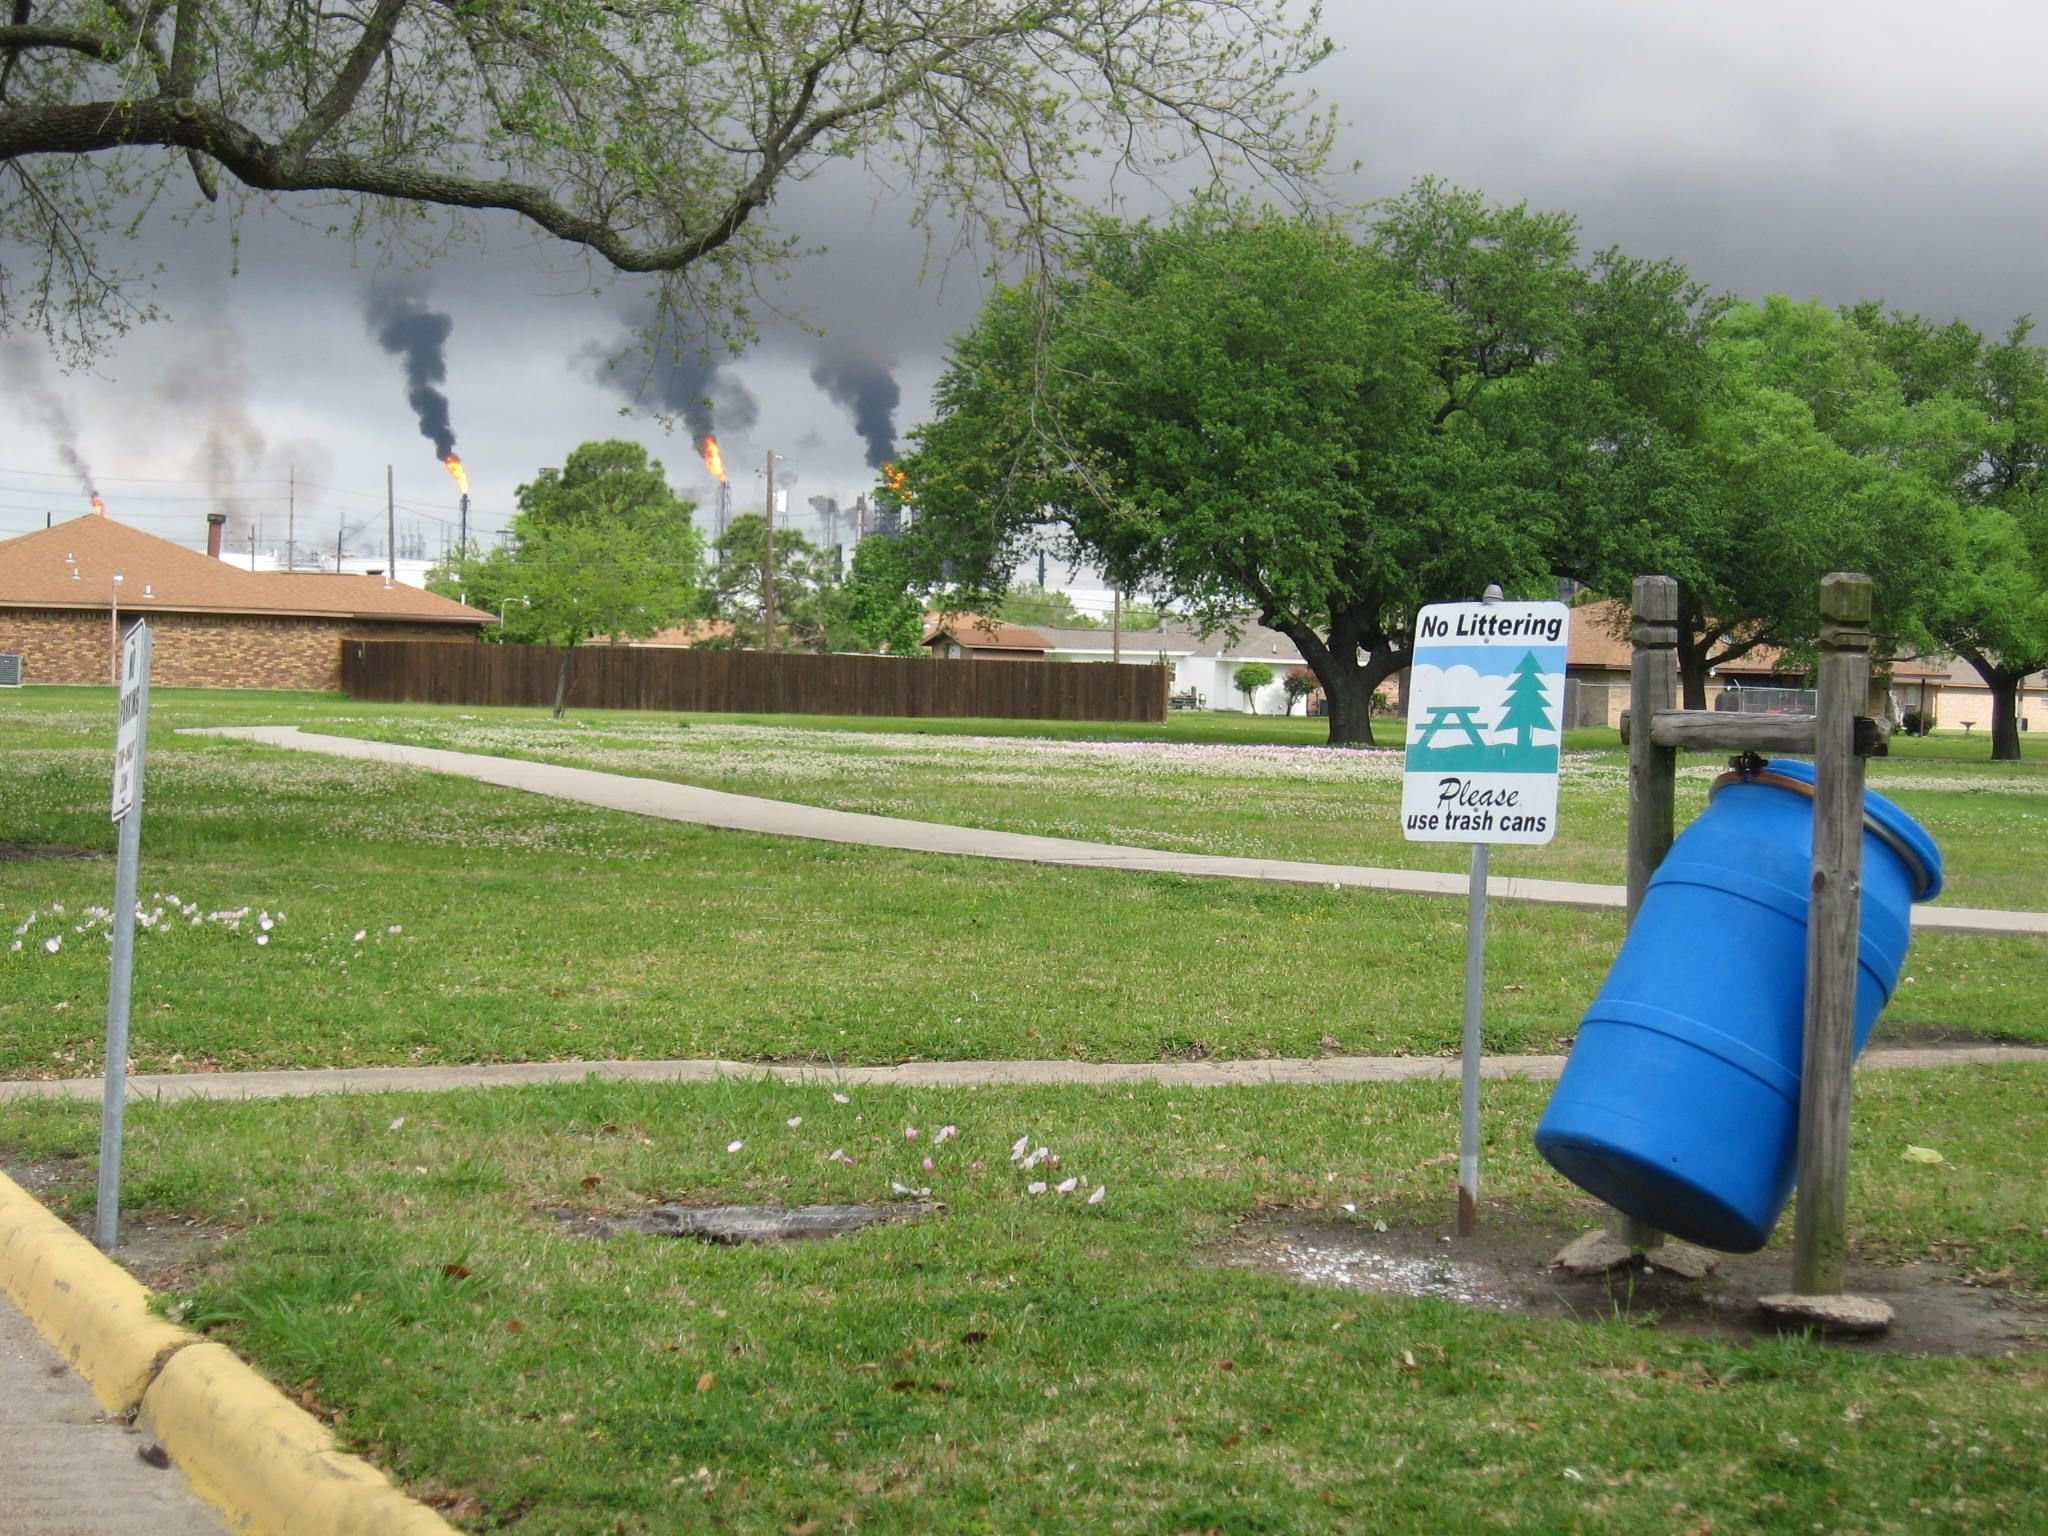 Communities Urge EPA To Embolden Proposed Emission Rule For Chemical Facilities